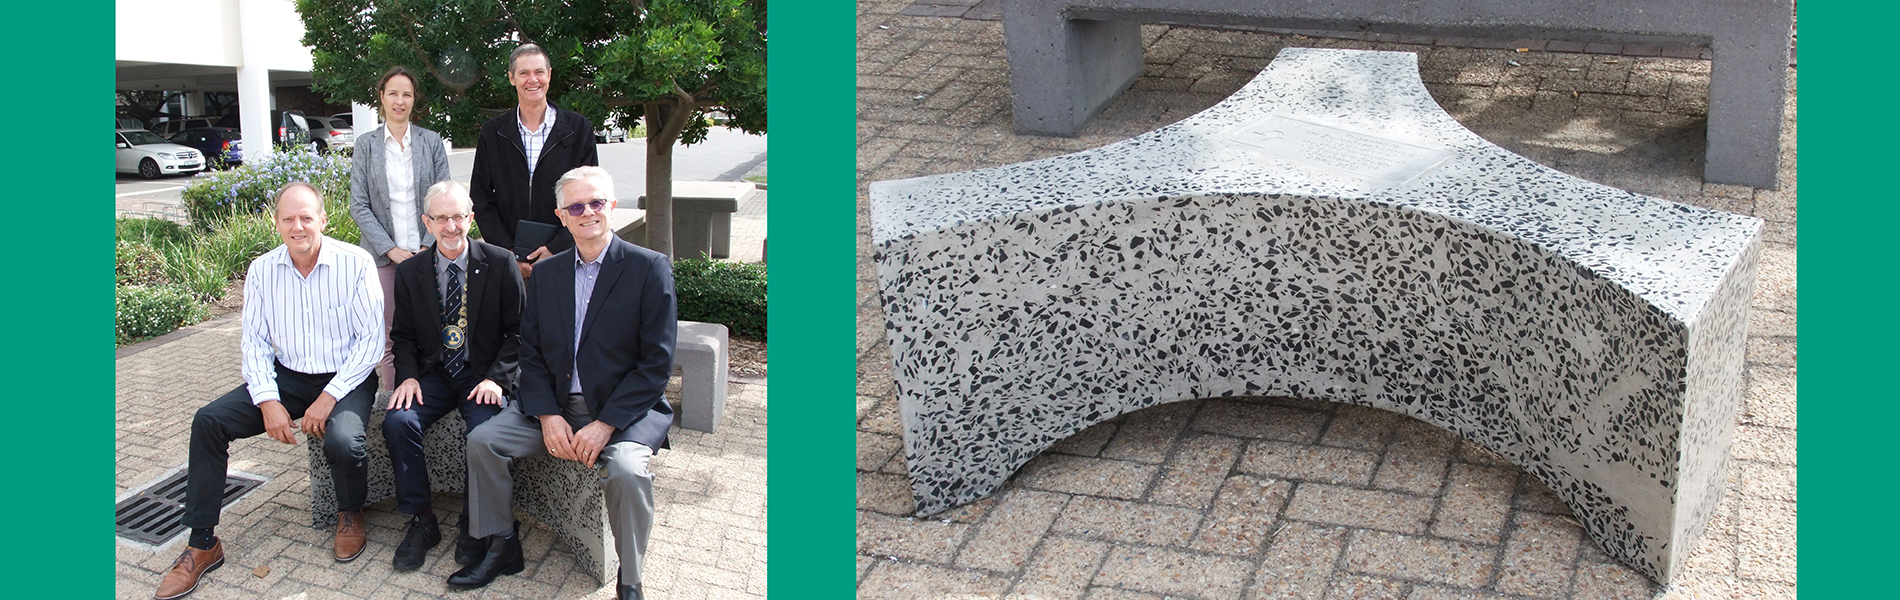 Donation of concrete seat commemorates and celebrates longstanding, solid relationship